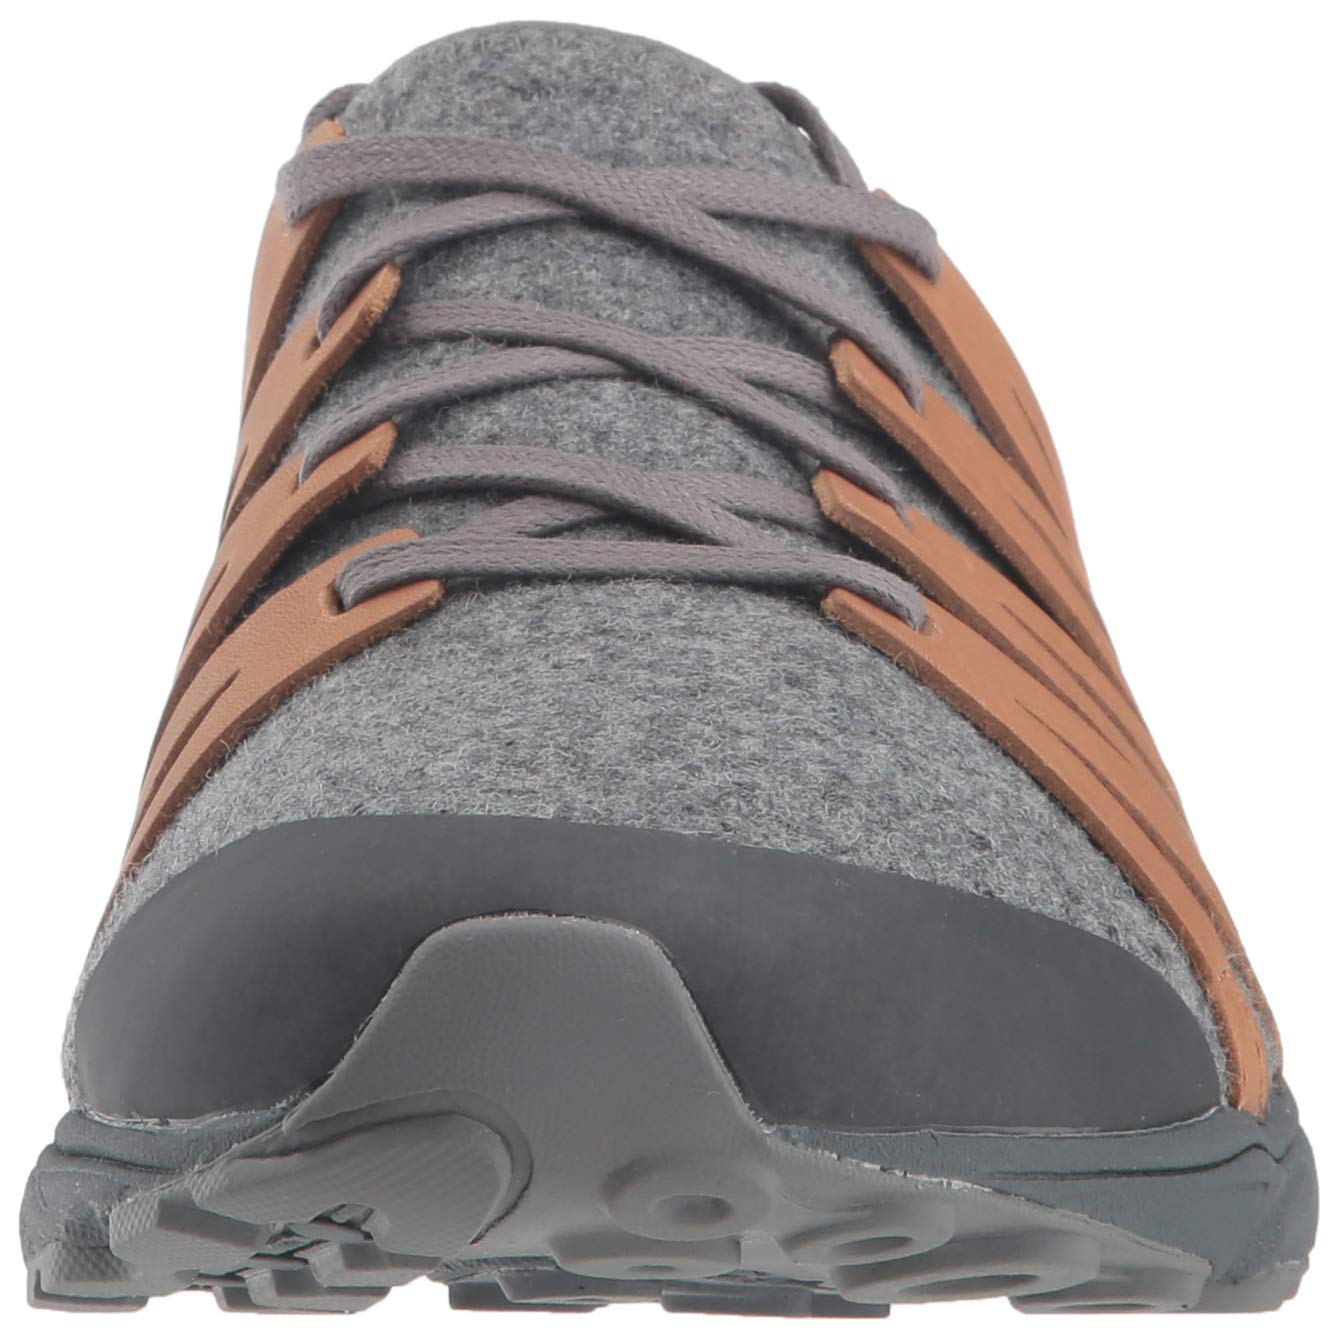 Merrell Women's Riveter Wool Sneaker Charcoal 11 M US by Merrell (Image #4)